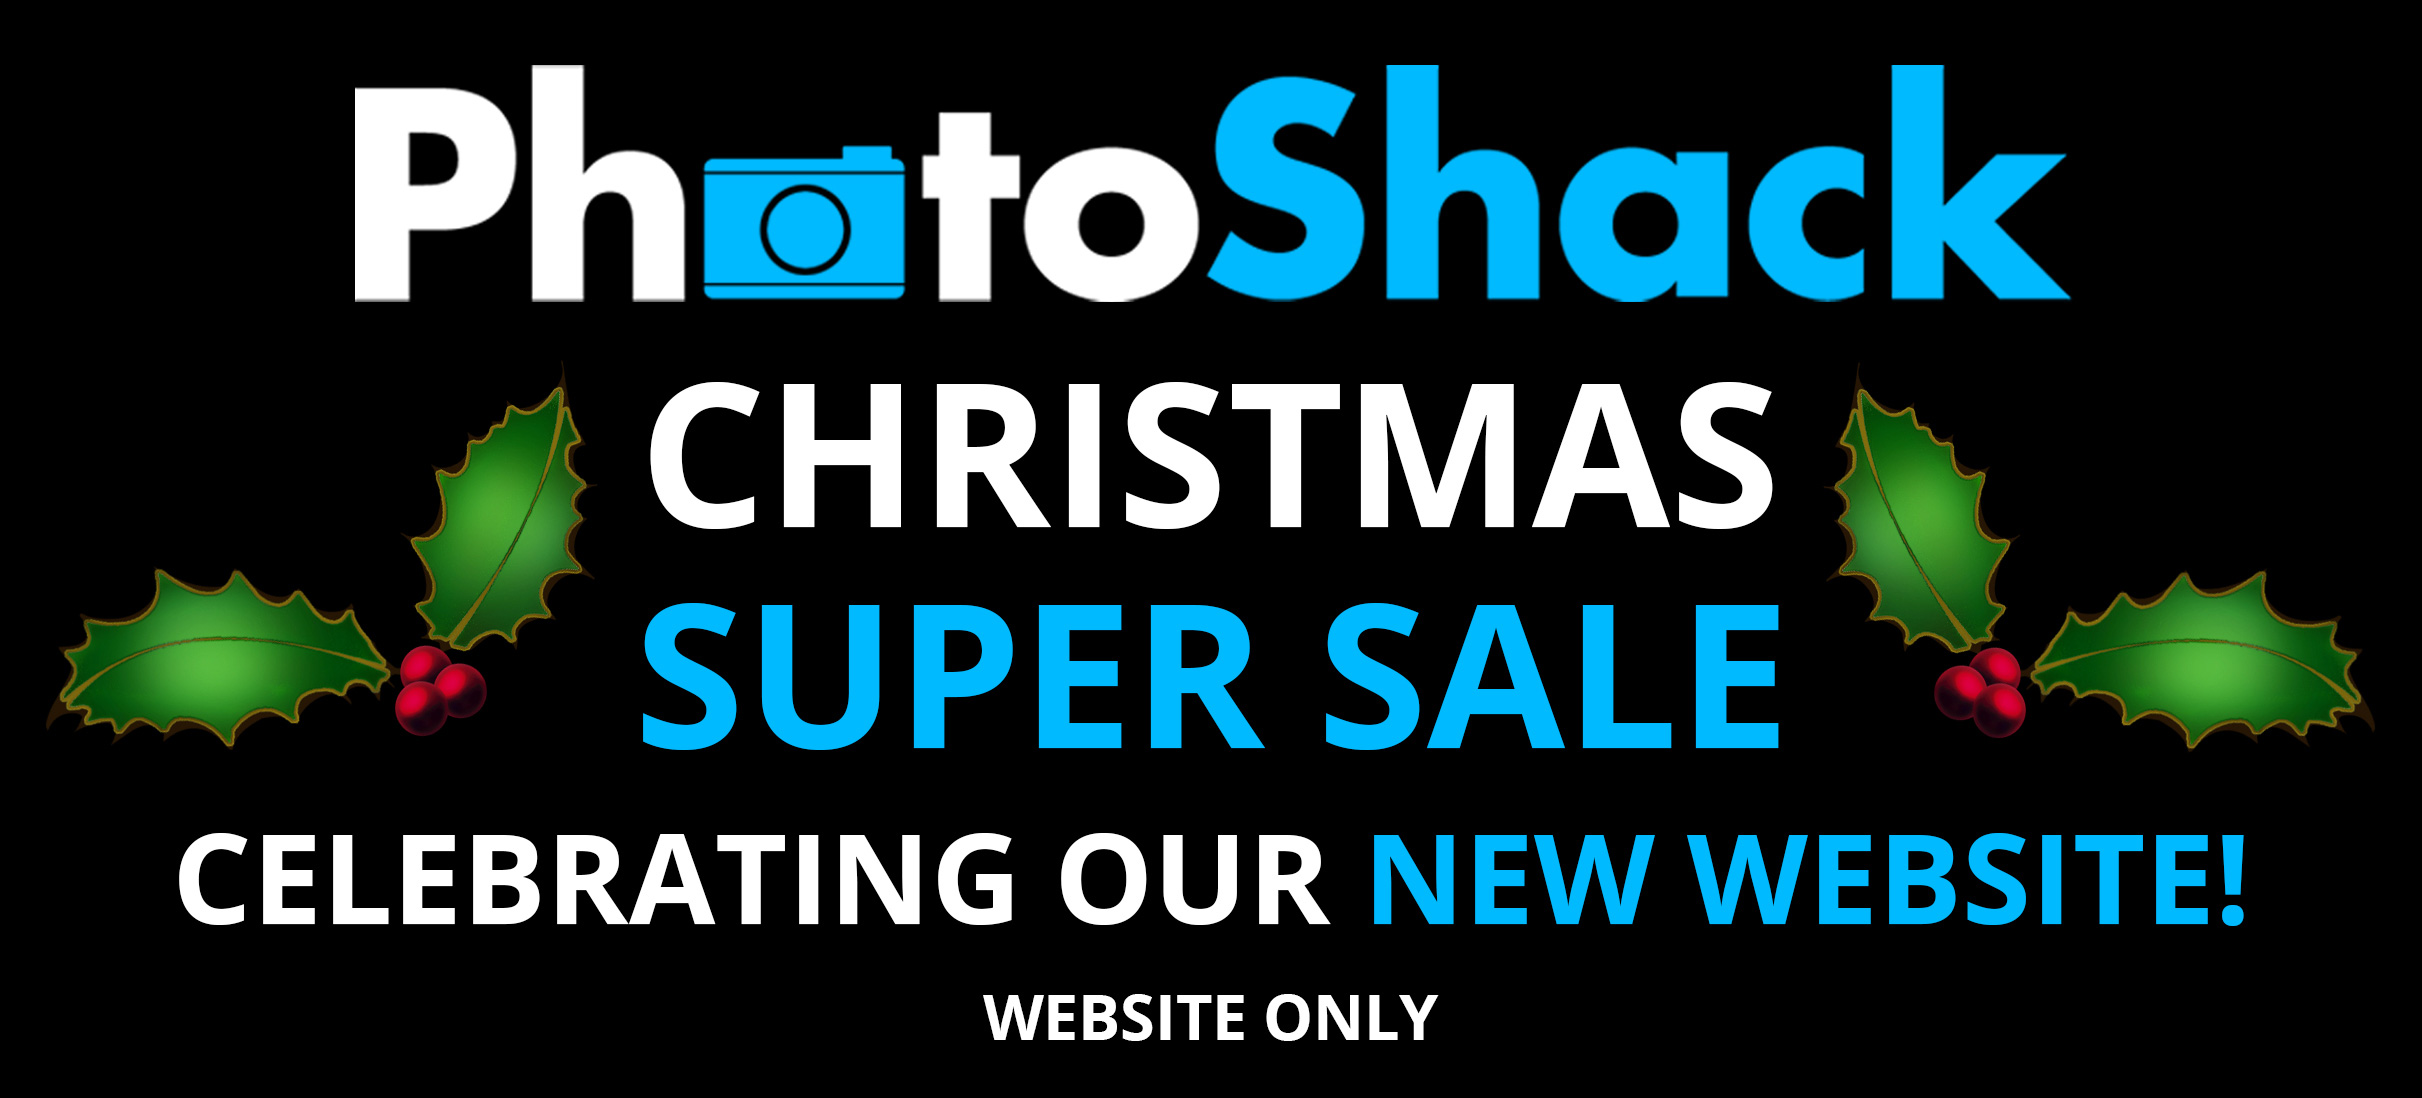 Photoshack Christmas Super Sale